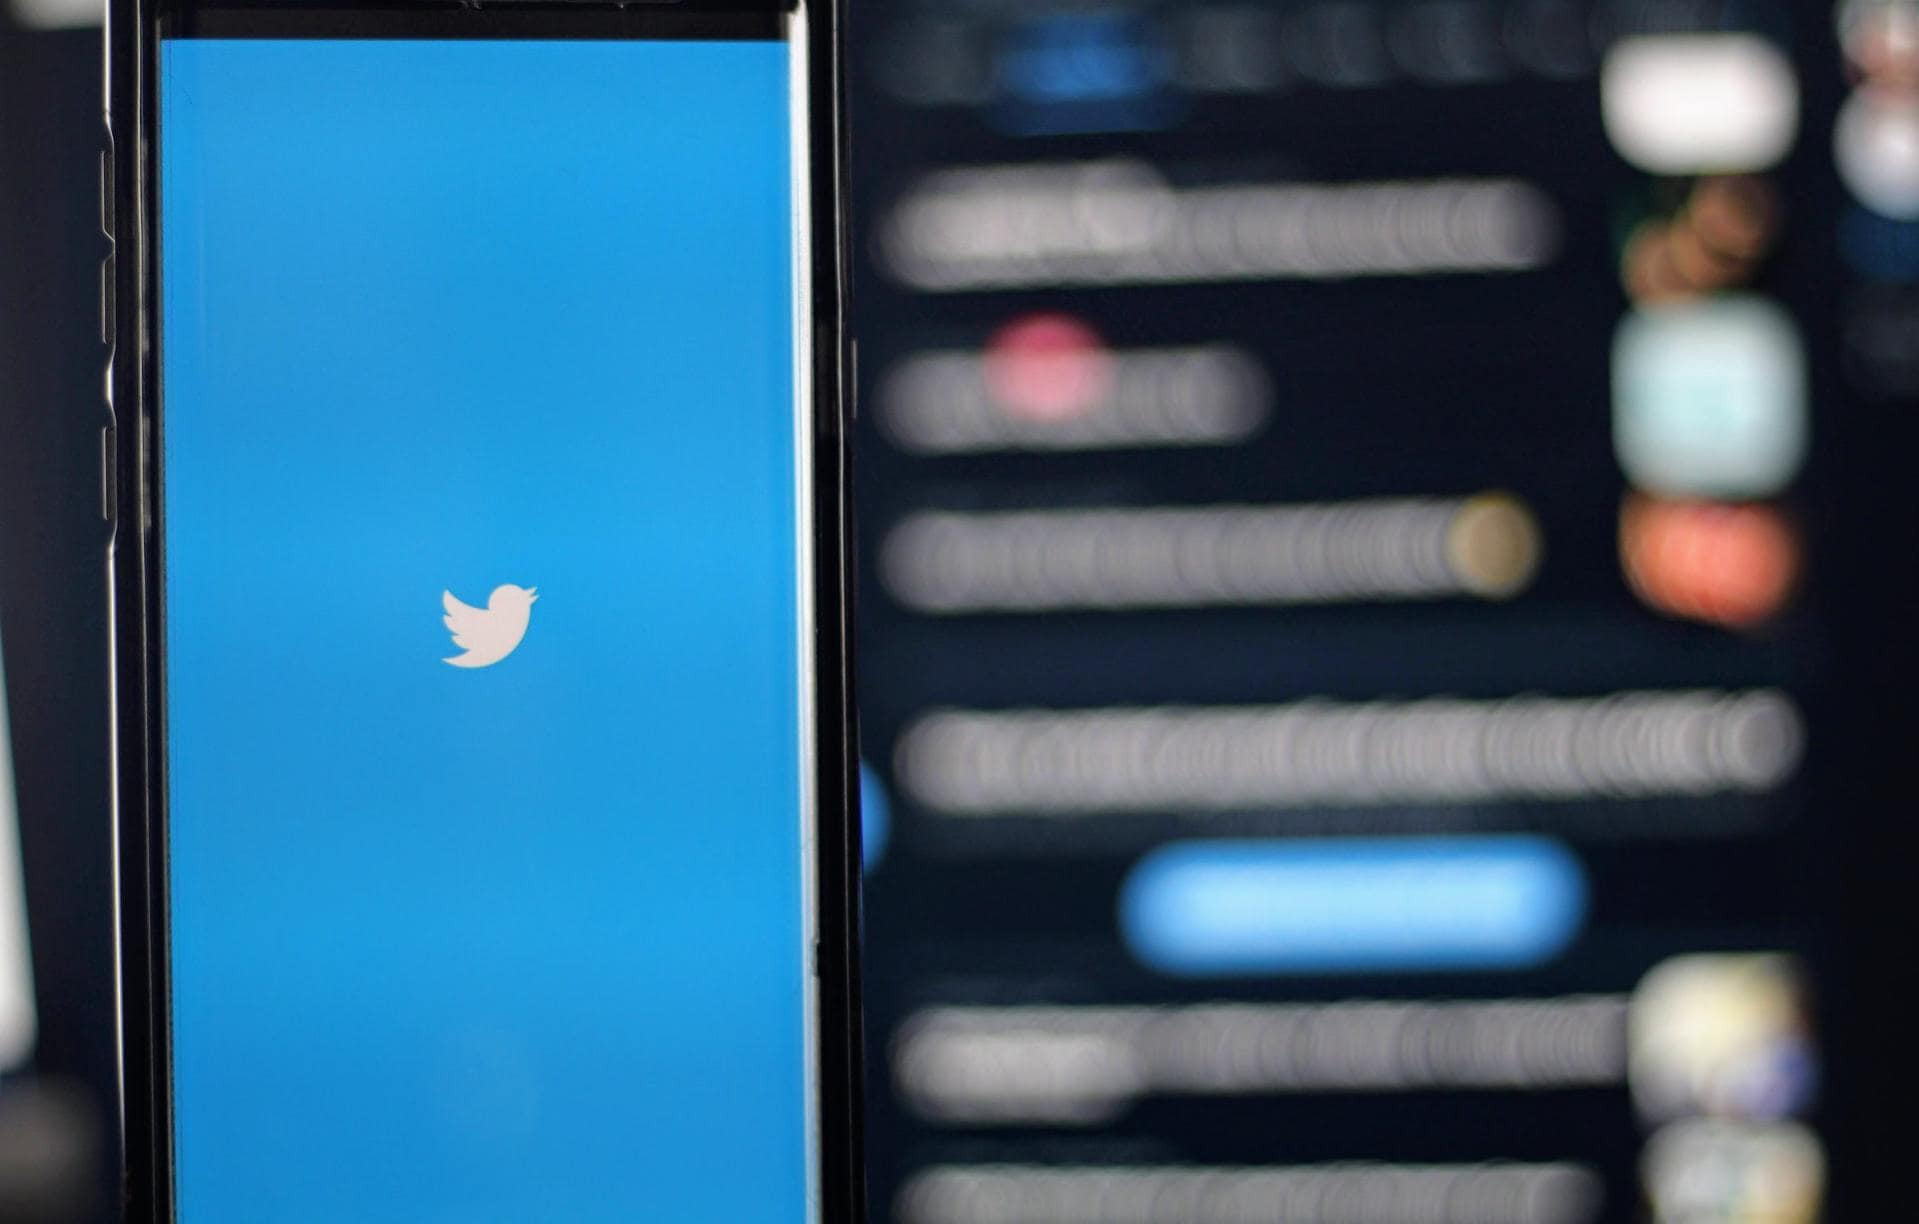 How To Delete Twitter Account Permanently?